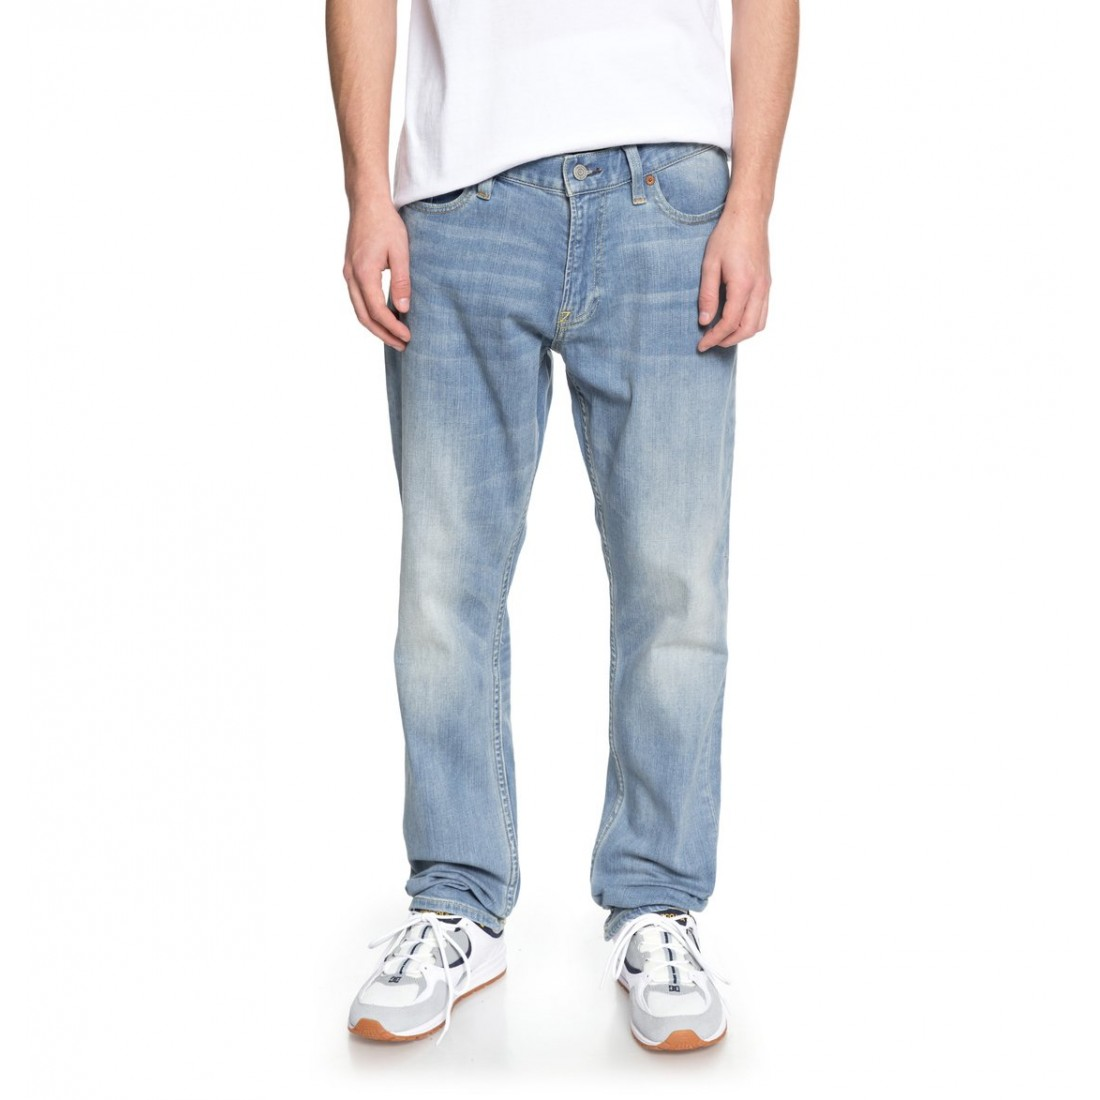 JEAN DC WORKER STRAIGHT light indigo bleach